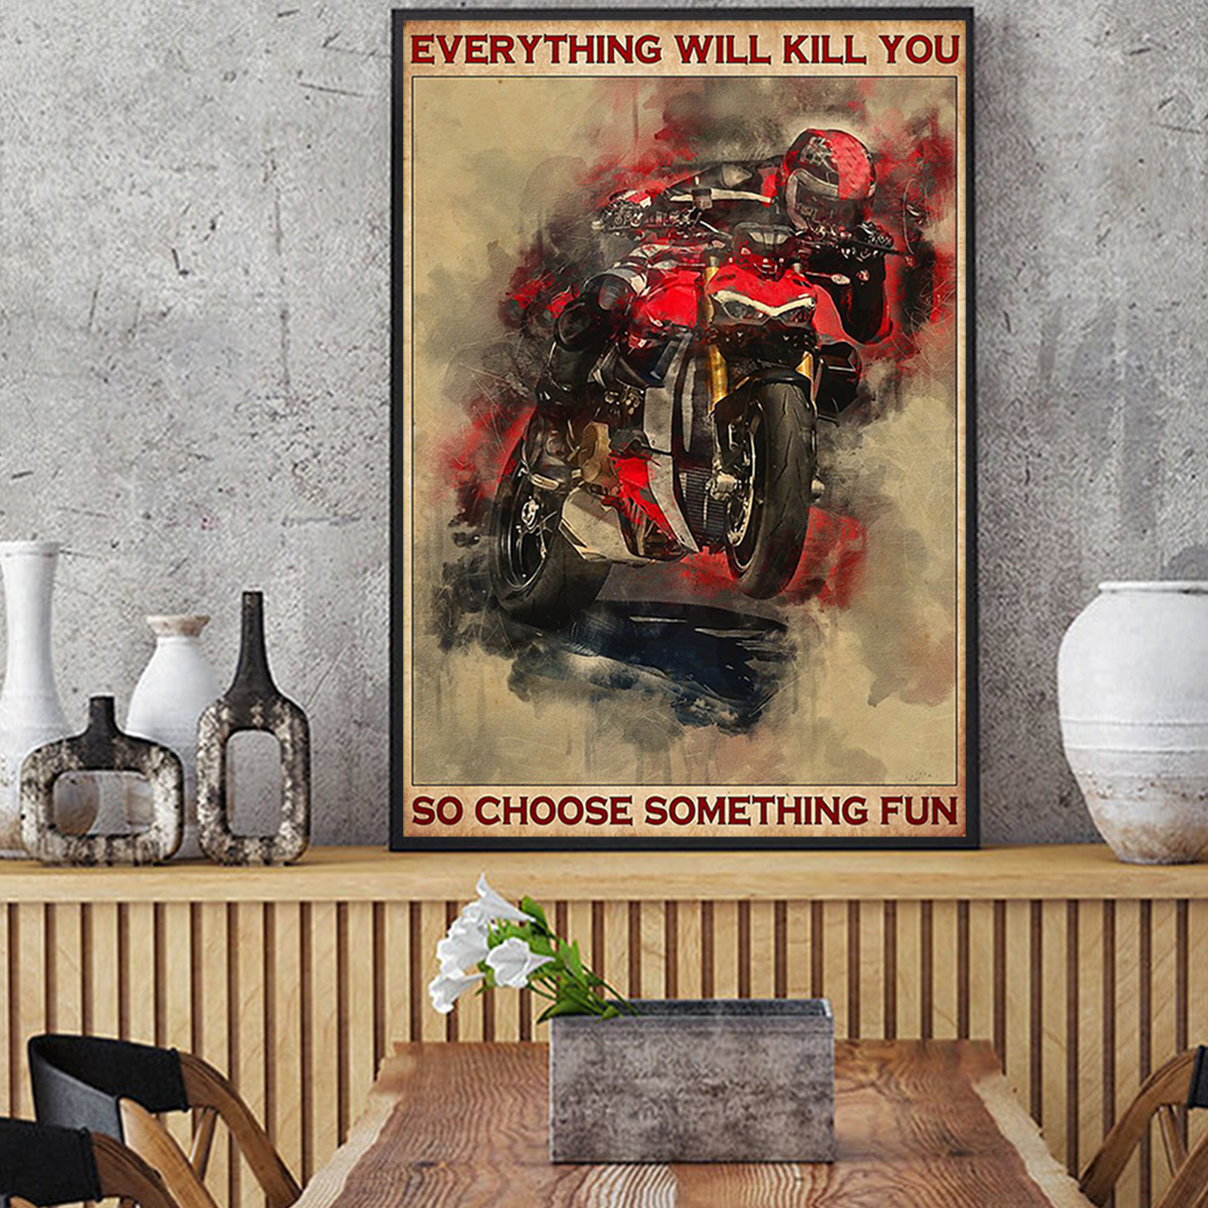 Ducati everything will kill you so choose something fun poster A1